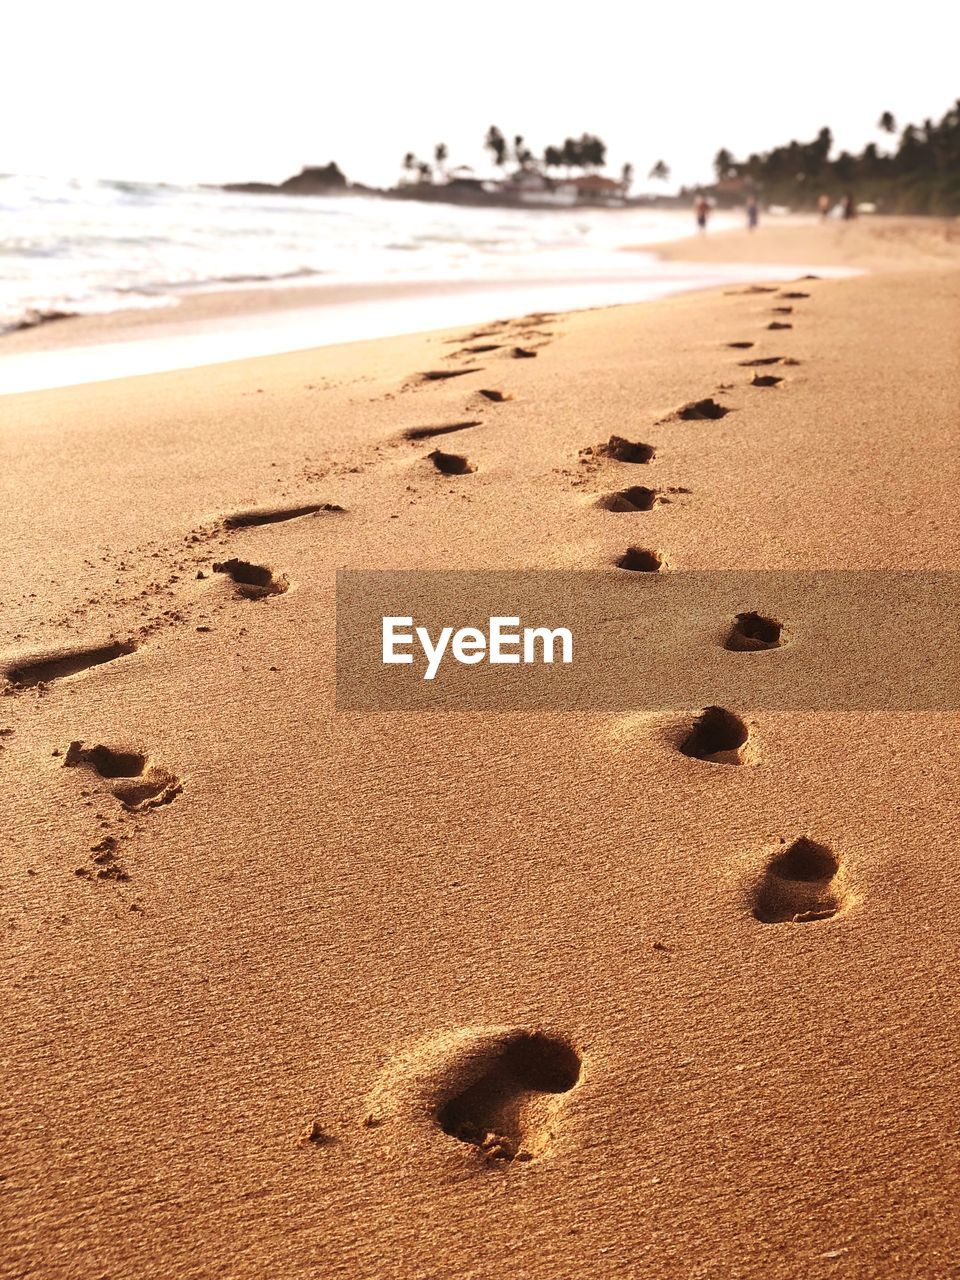 land, beach, sand, footprint, nature, water, sea, tranquility, print, no people, day, track - imprint, beauty in nature, sky, sunlight, focus on foreground, tranquil scene, scenics - nature, outdoors, surface level